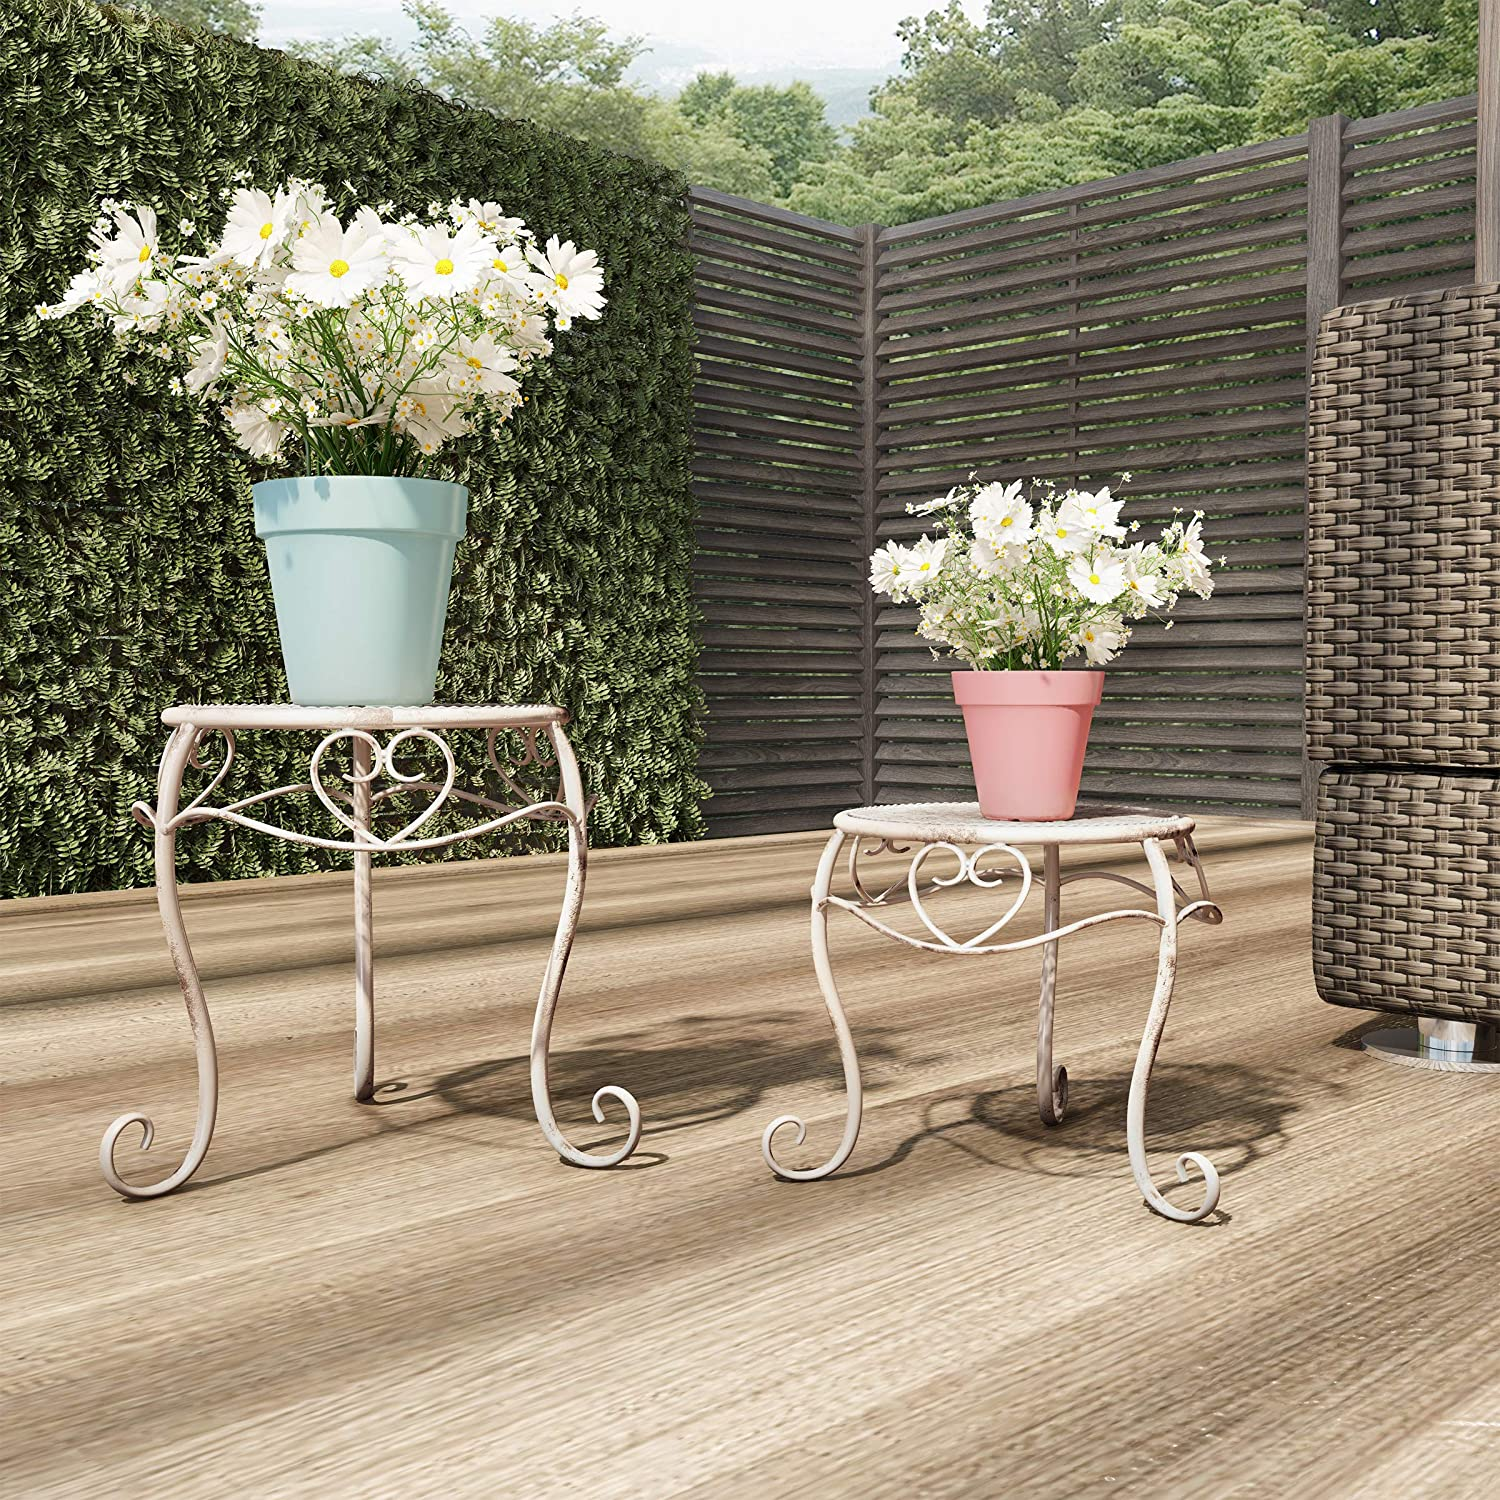 Pure Garden 50-LG1160 Stands – Set of 2 Indoor or Outdoor Nesting Wrought Iron Metal Round Decorative Potted Plant Display Accessories (Antique White)